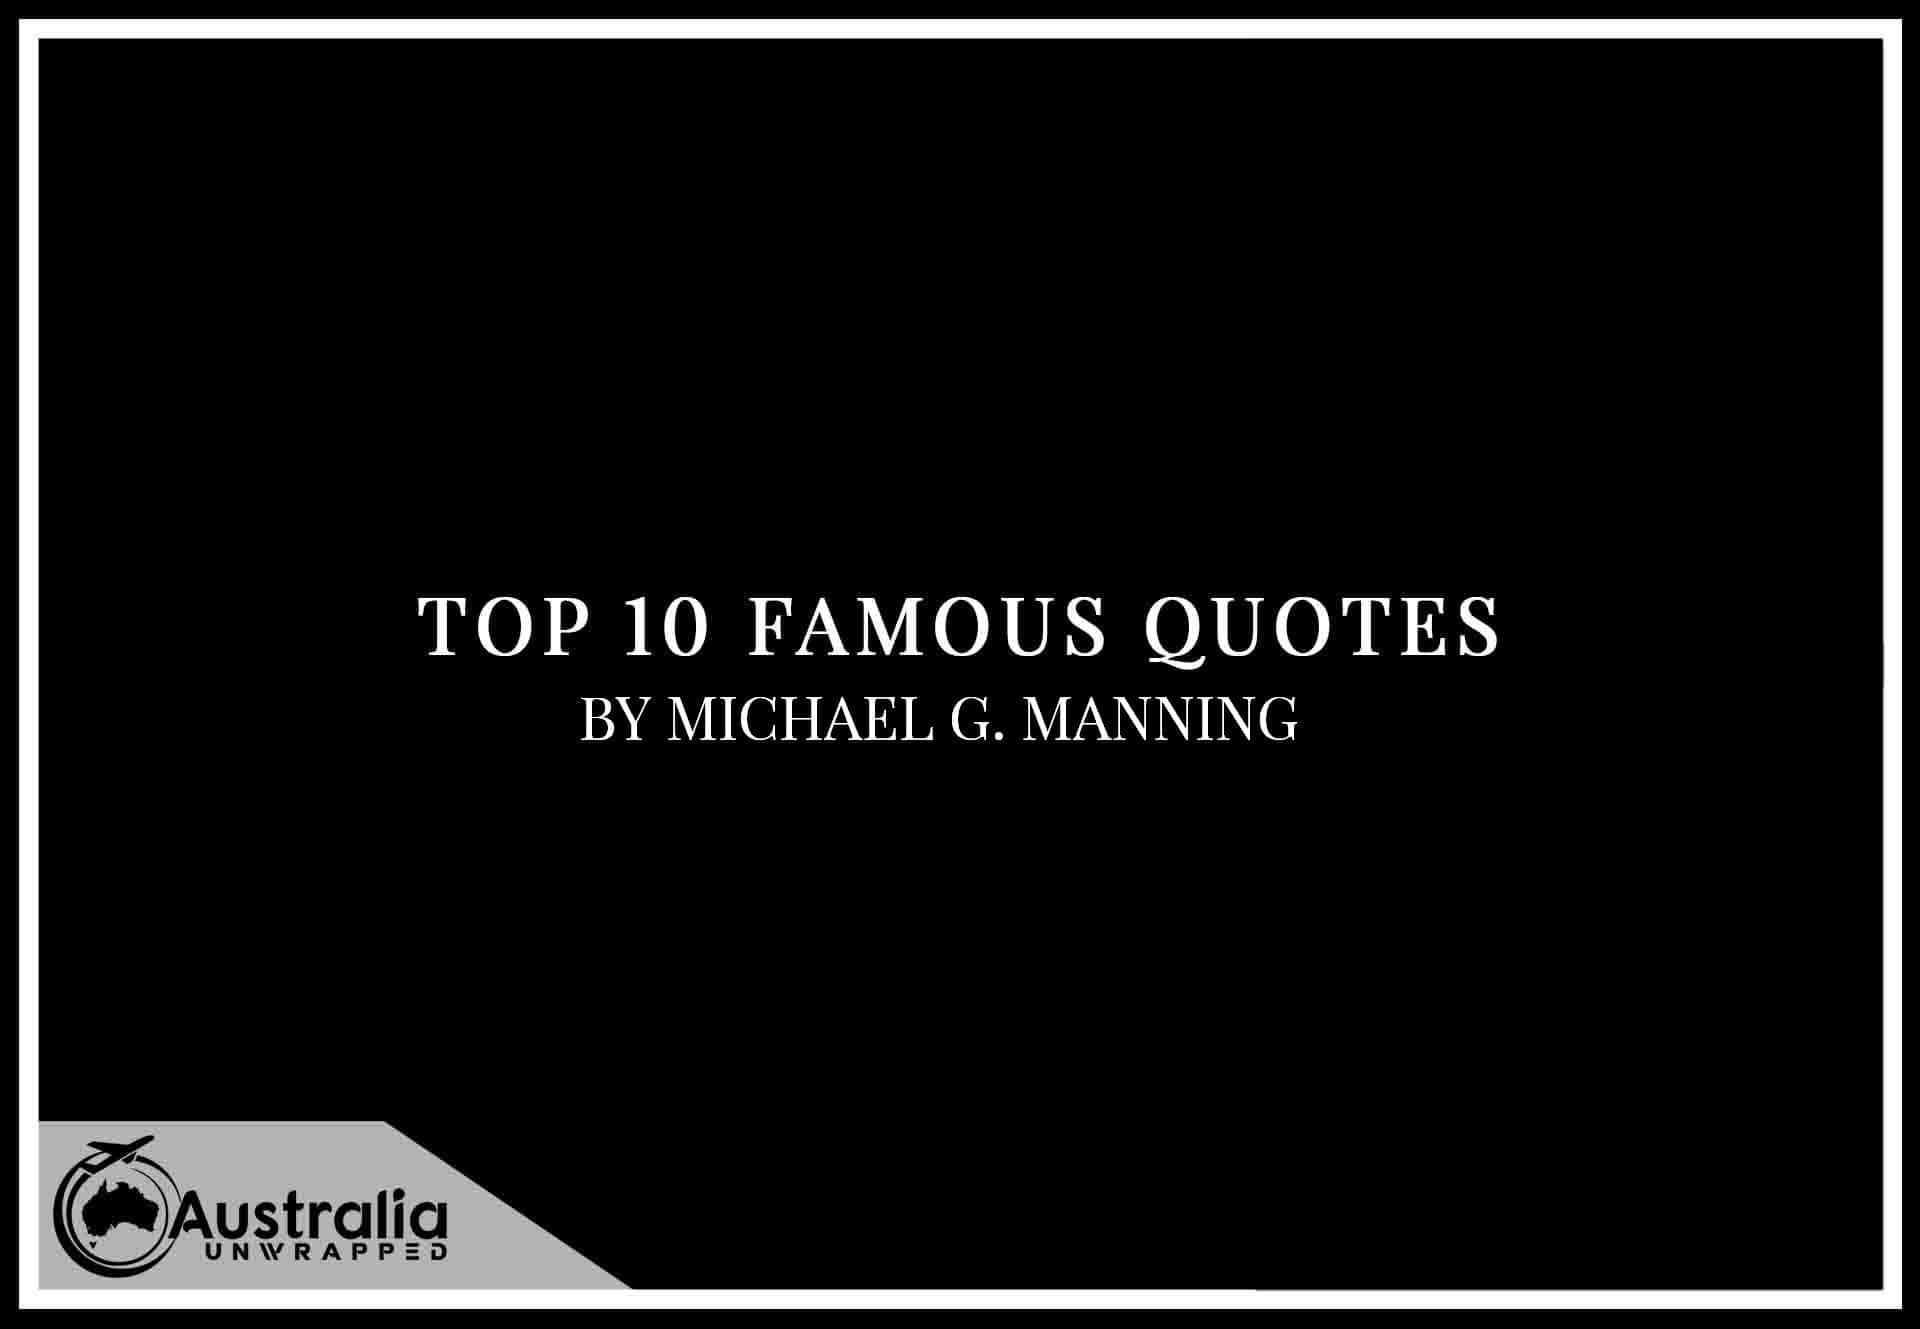 Top 10 Famous Quotes by Author Michael G. Manning